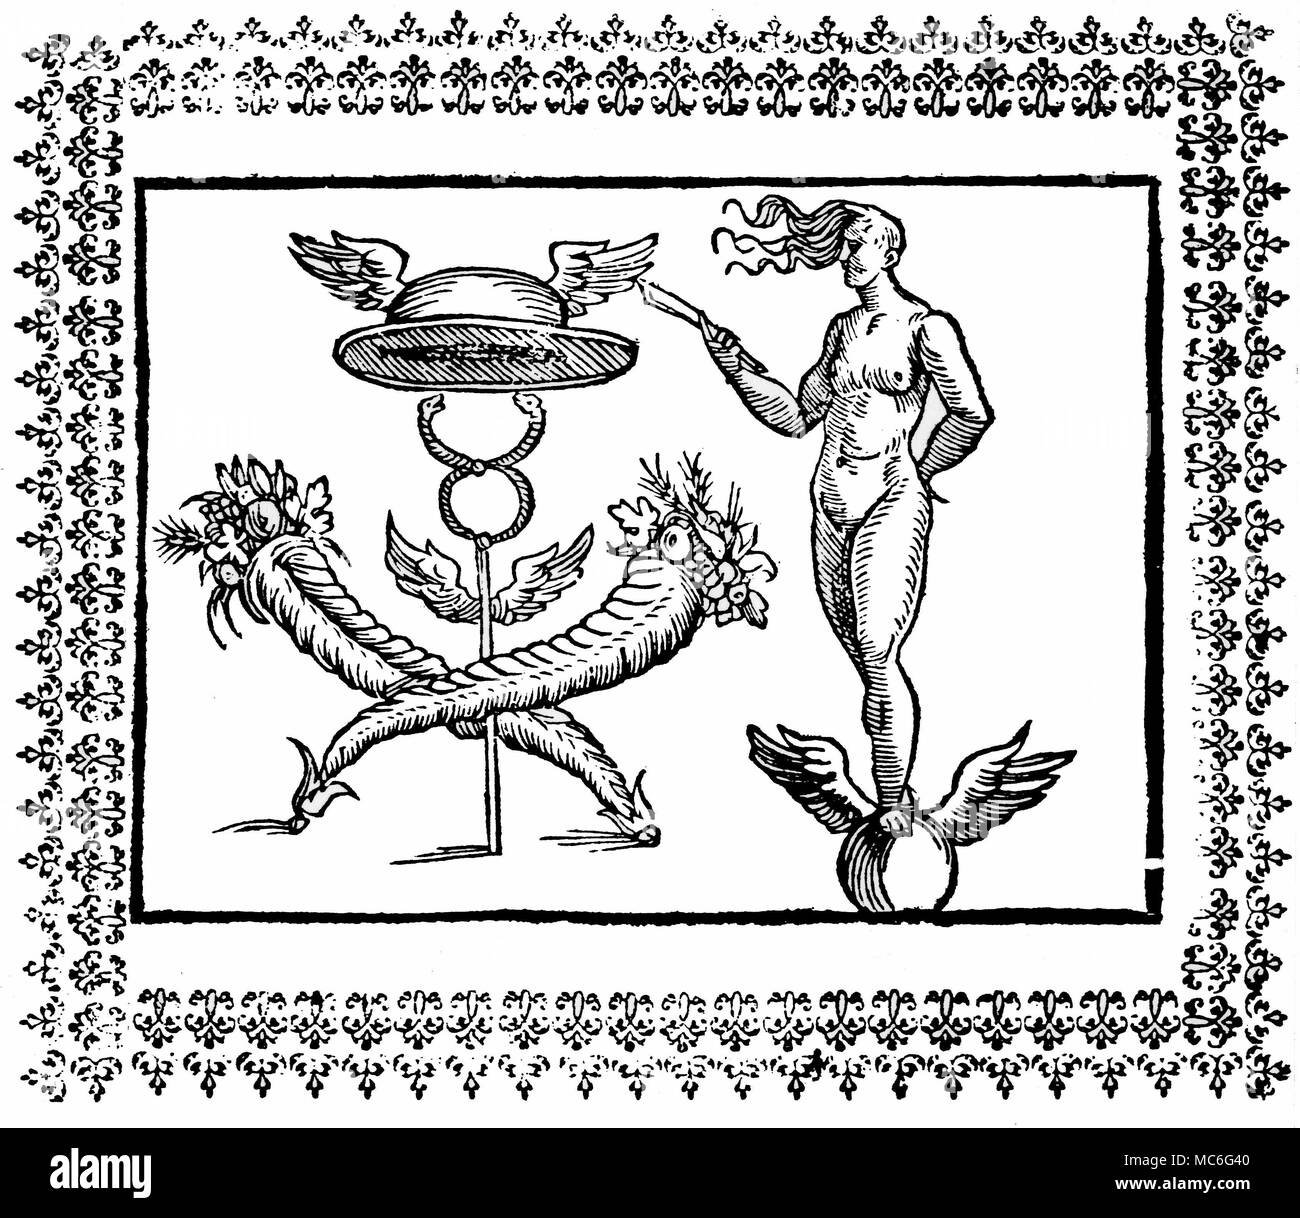 Greek Mythology Fortuna Symbols Hieroglyphic Figure Denoting